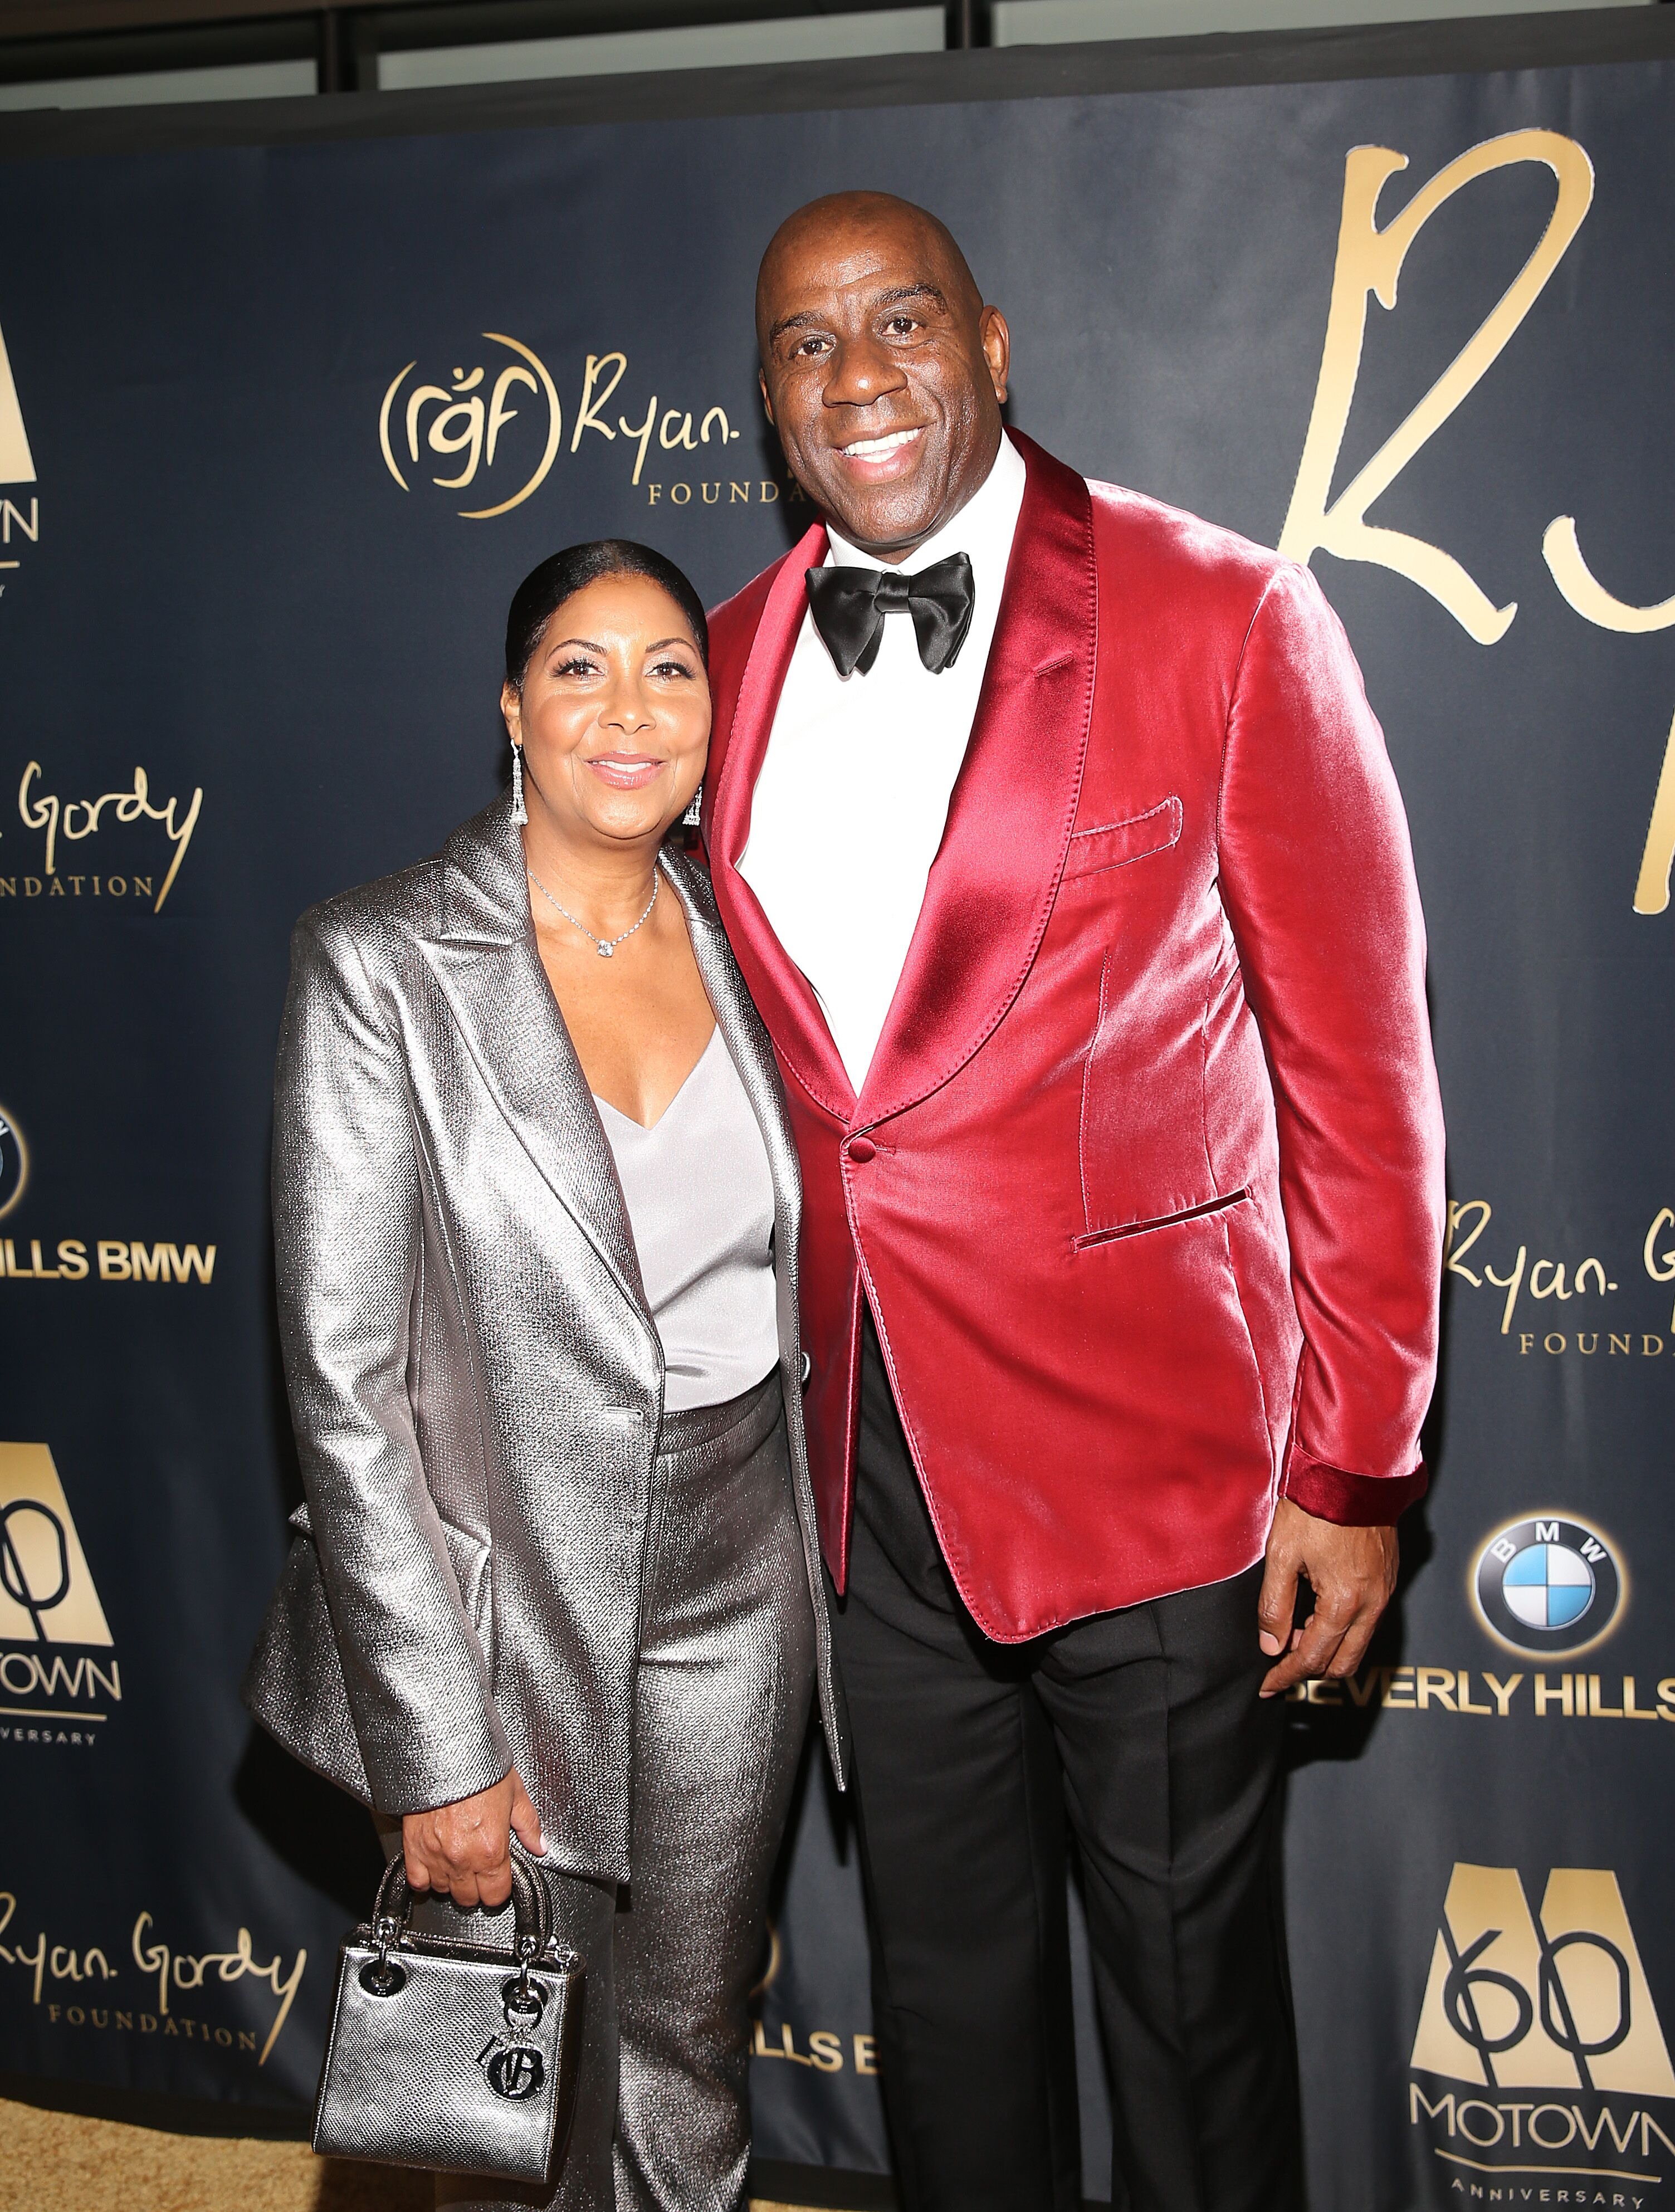 Magic and Cookie Johnson at a Ryan Gordy Foundation event | Source: Getty Images/GlobalImagesUkraine